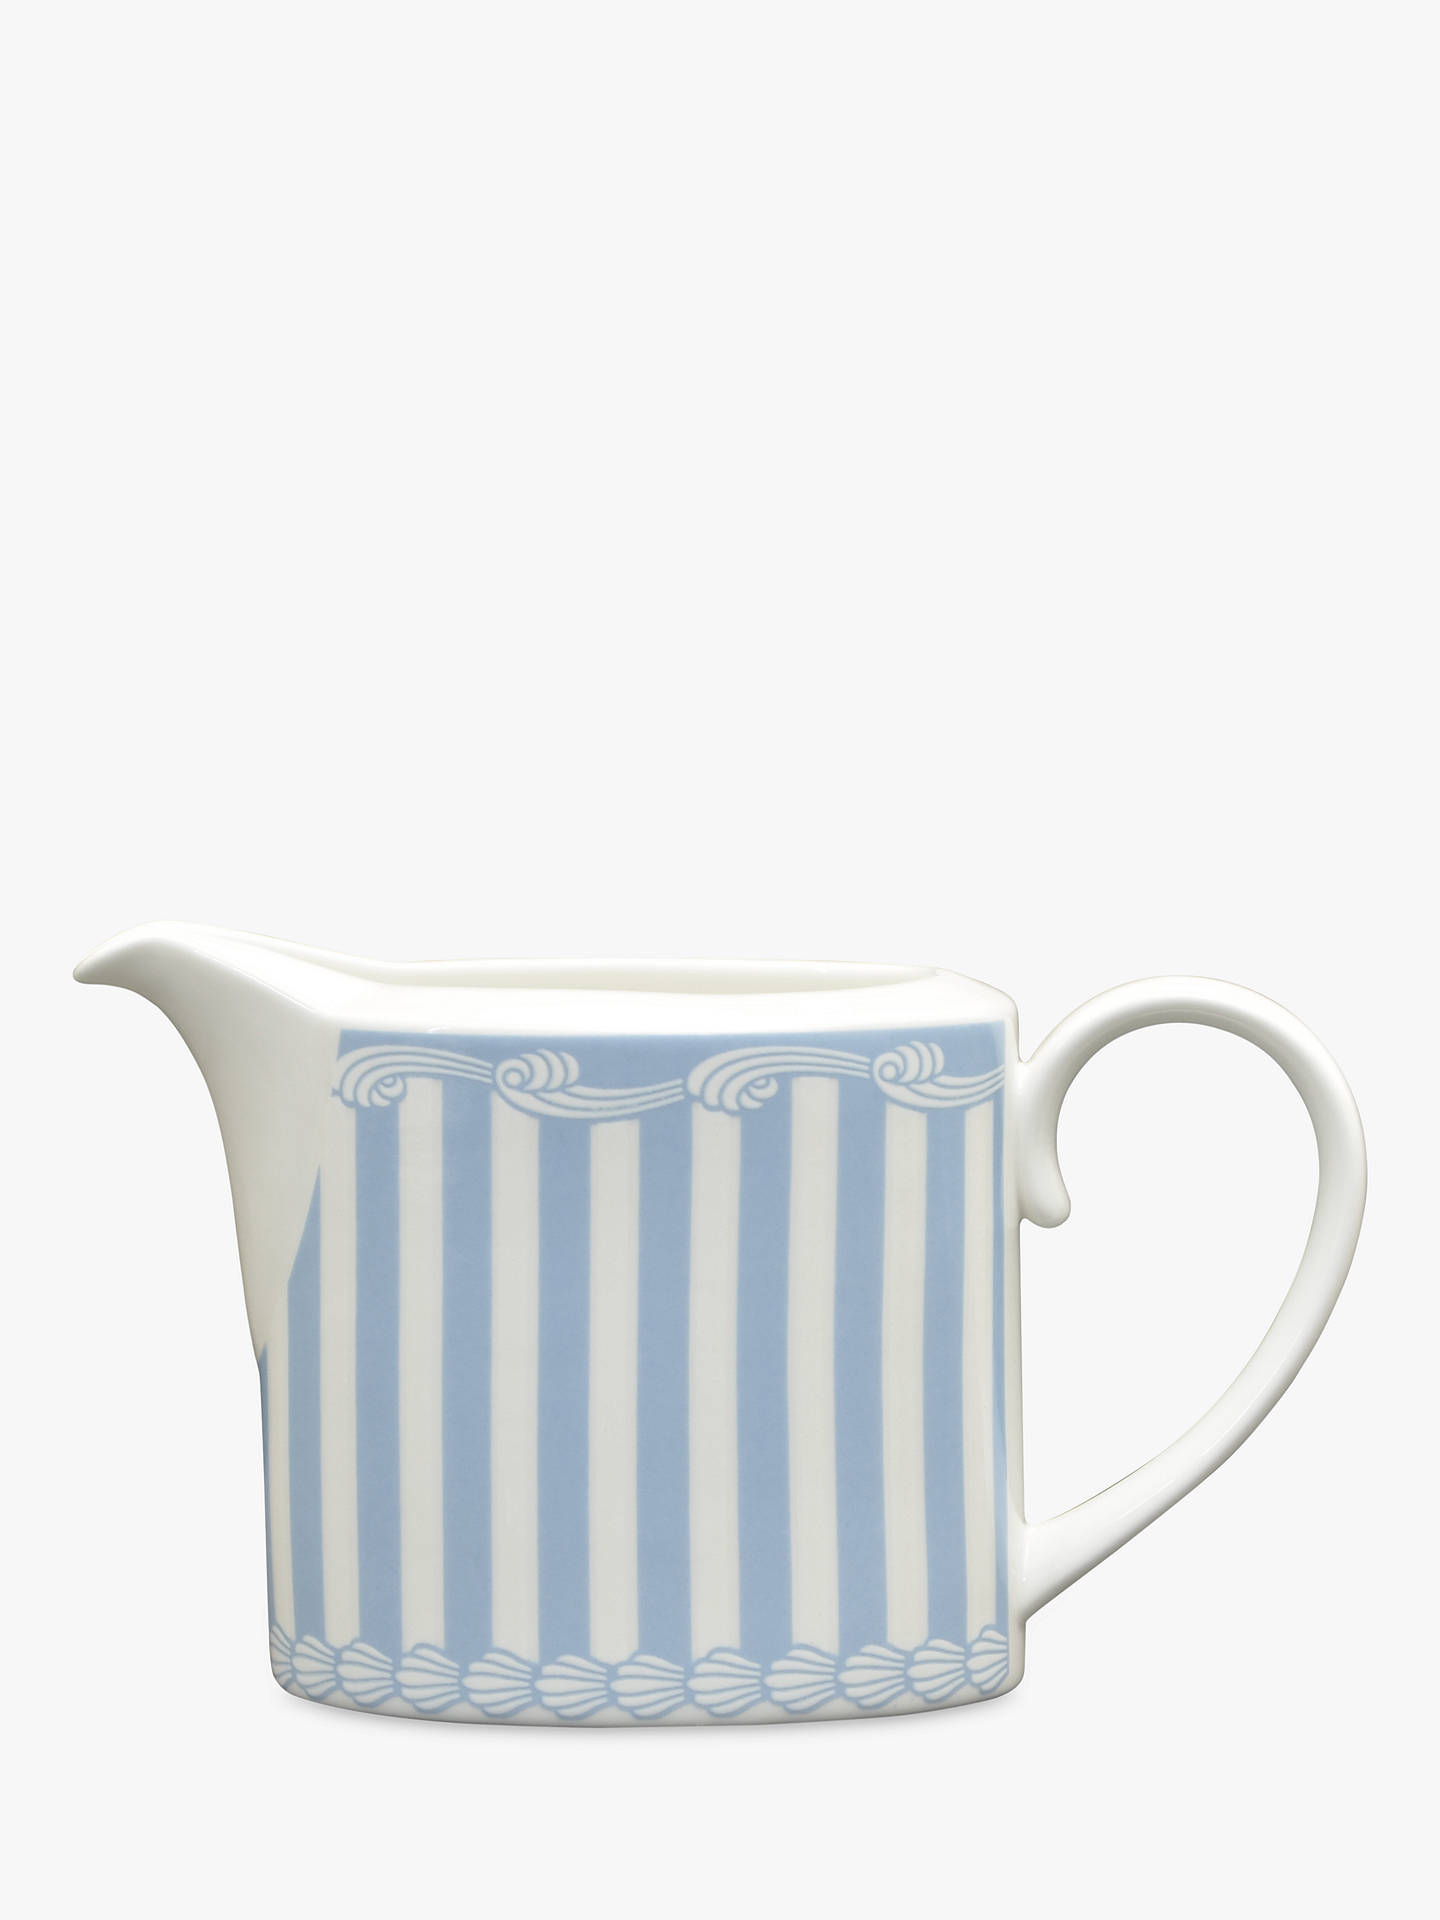 Buy Little Venice Cake Company Milk Jug, Blue/White, 220ml Online at johnlewis.com